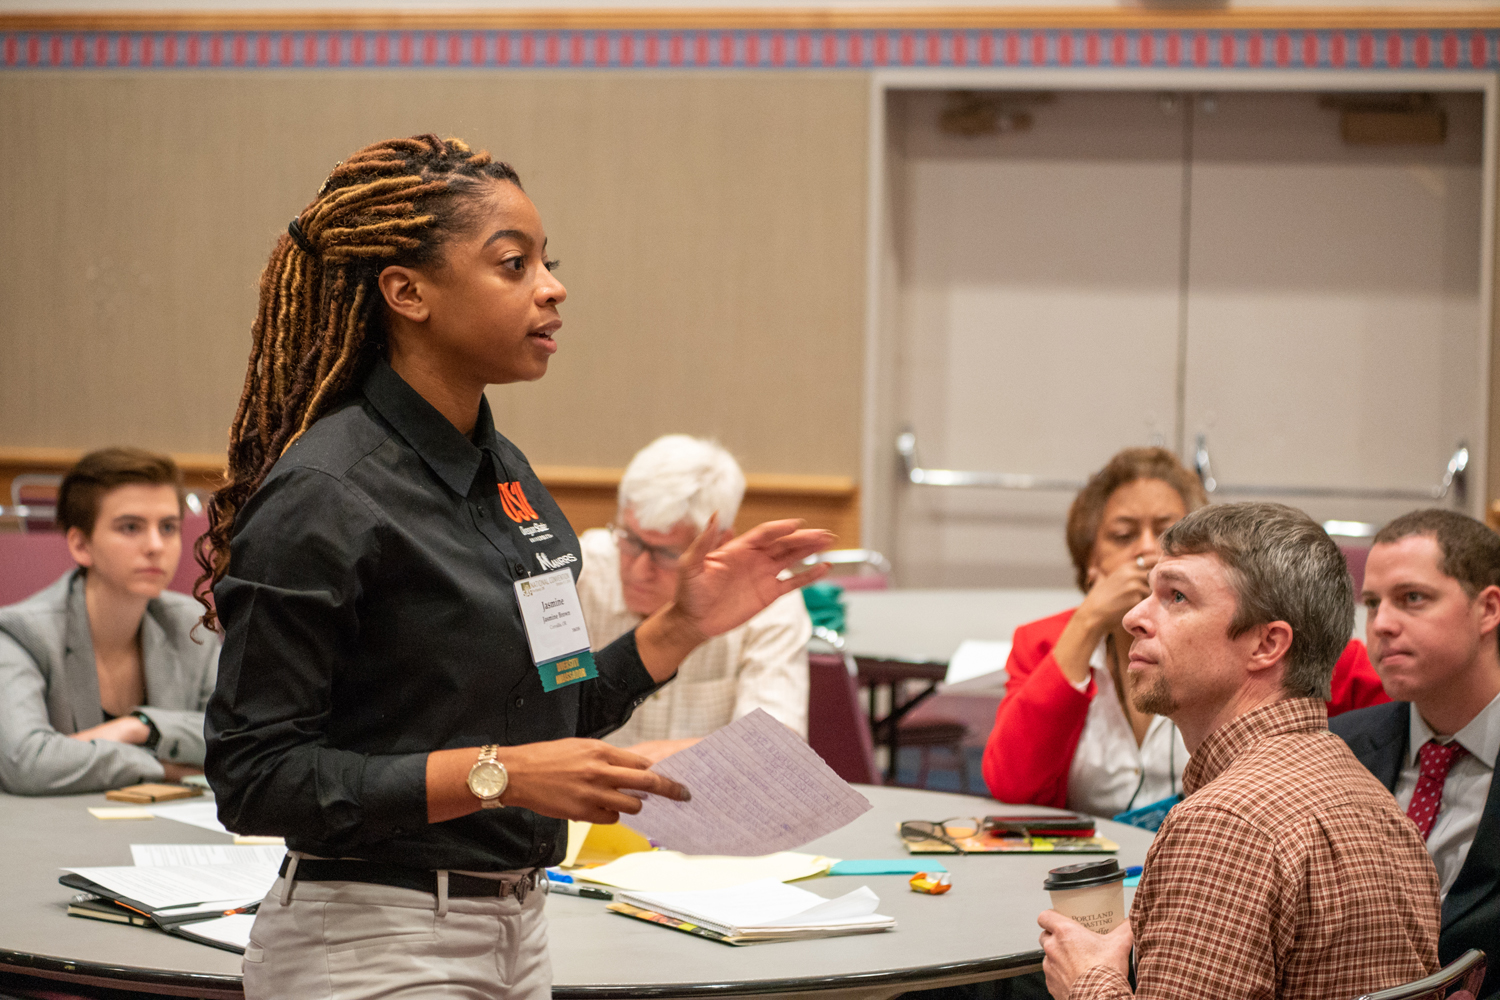 Wasim Muklashy Photography_-SAM_4276_Society of American Foresters National Convention_391.jpg